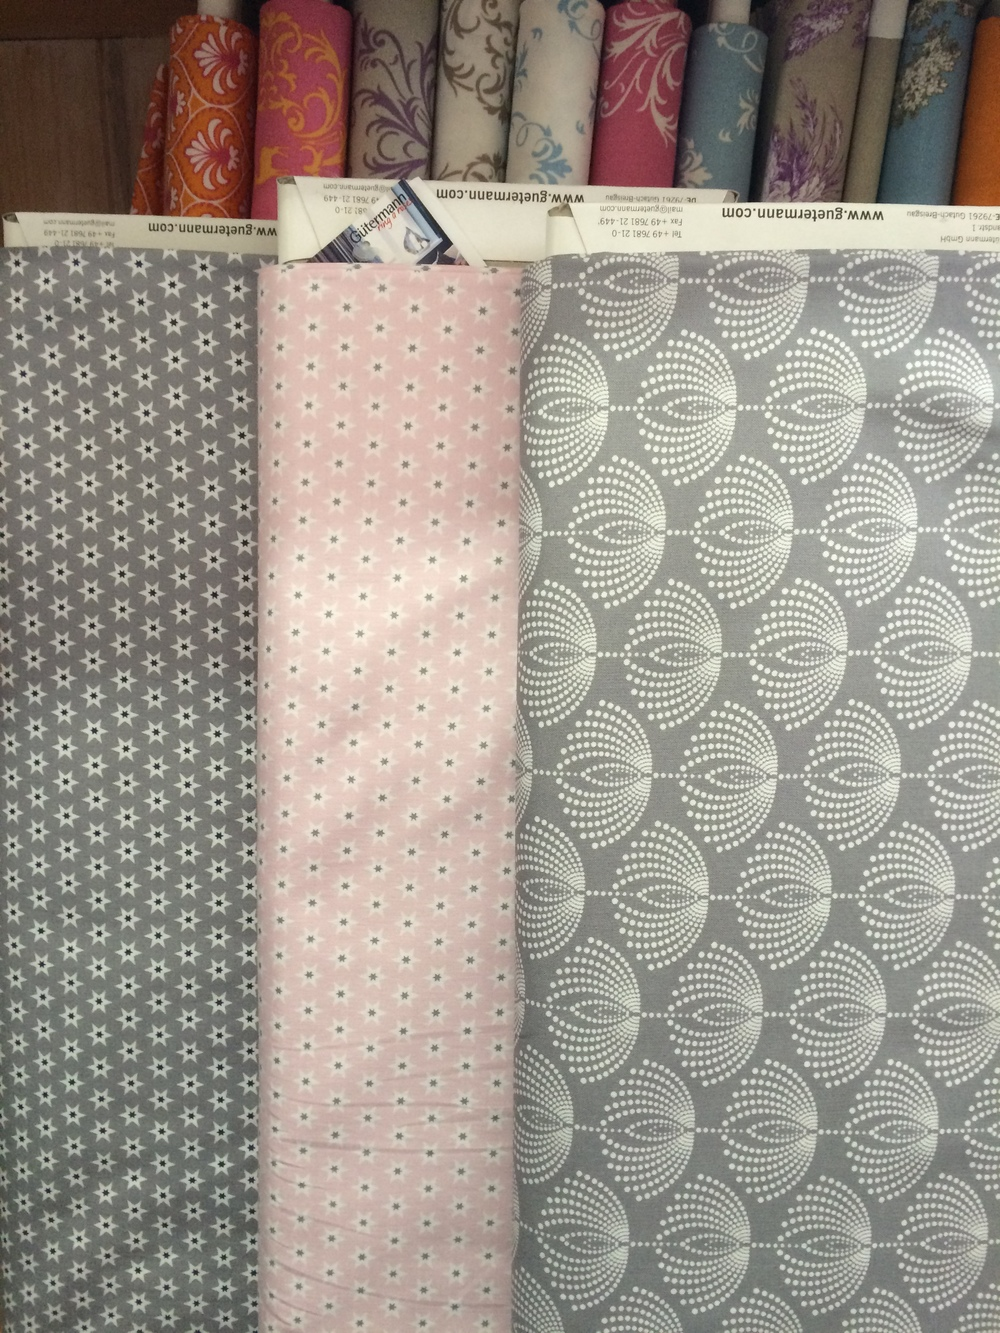 gutermann fabric